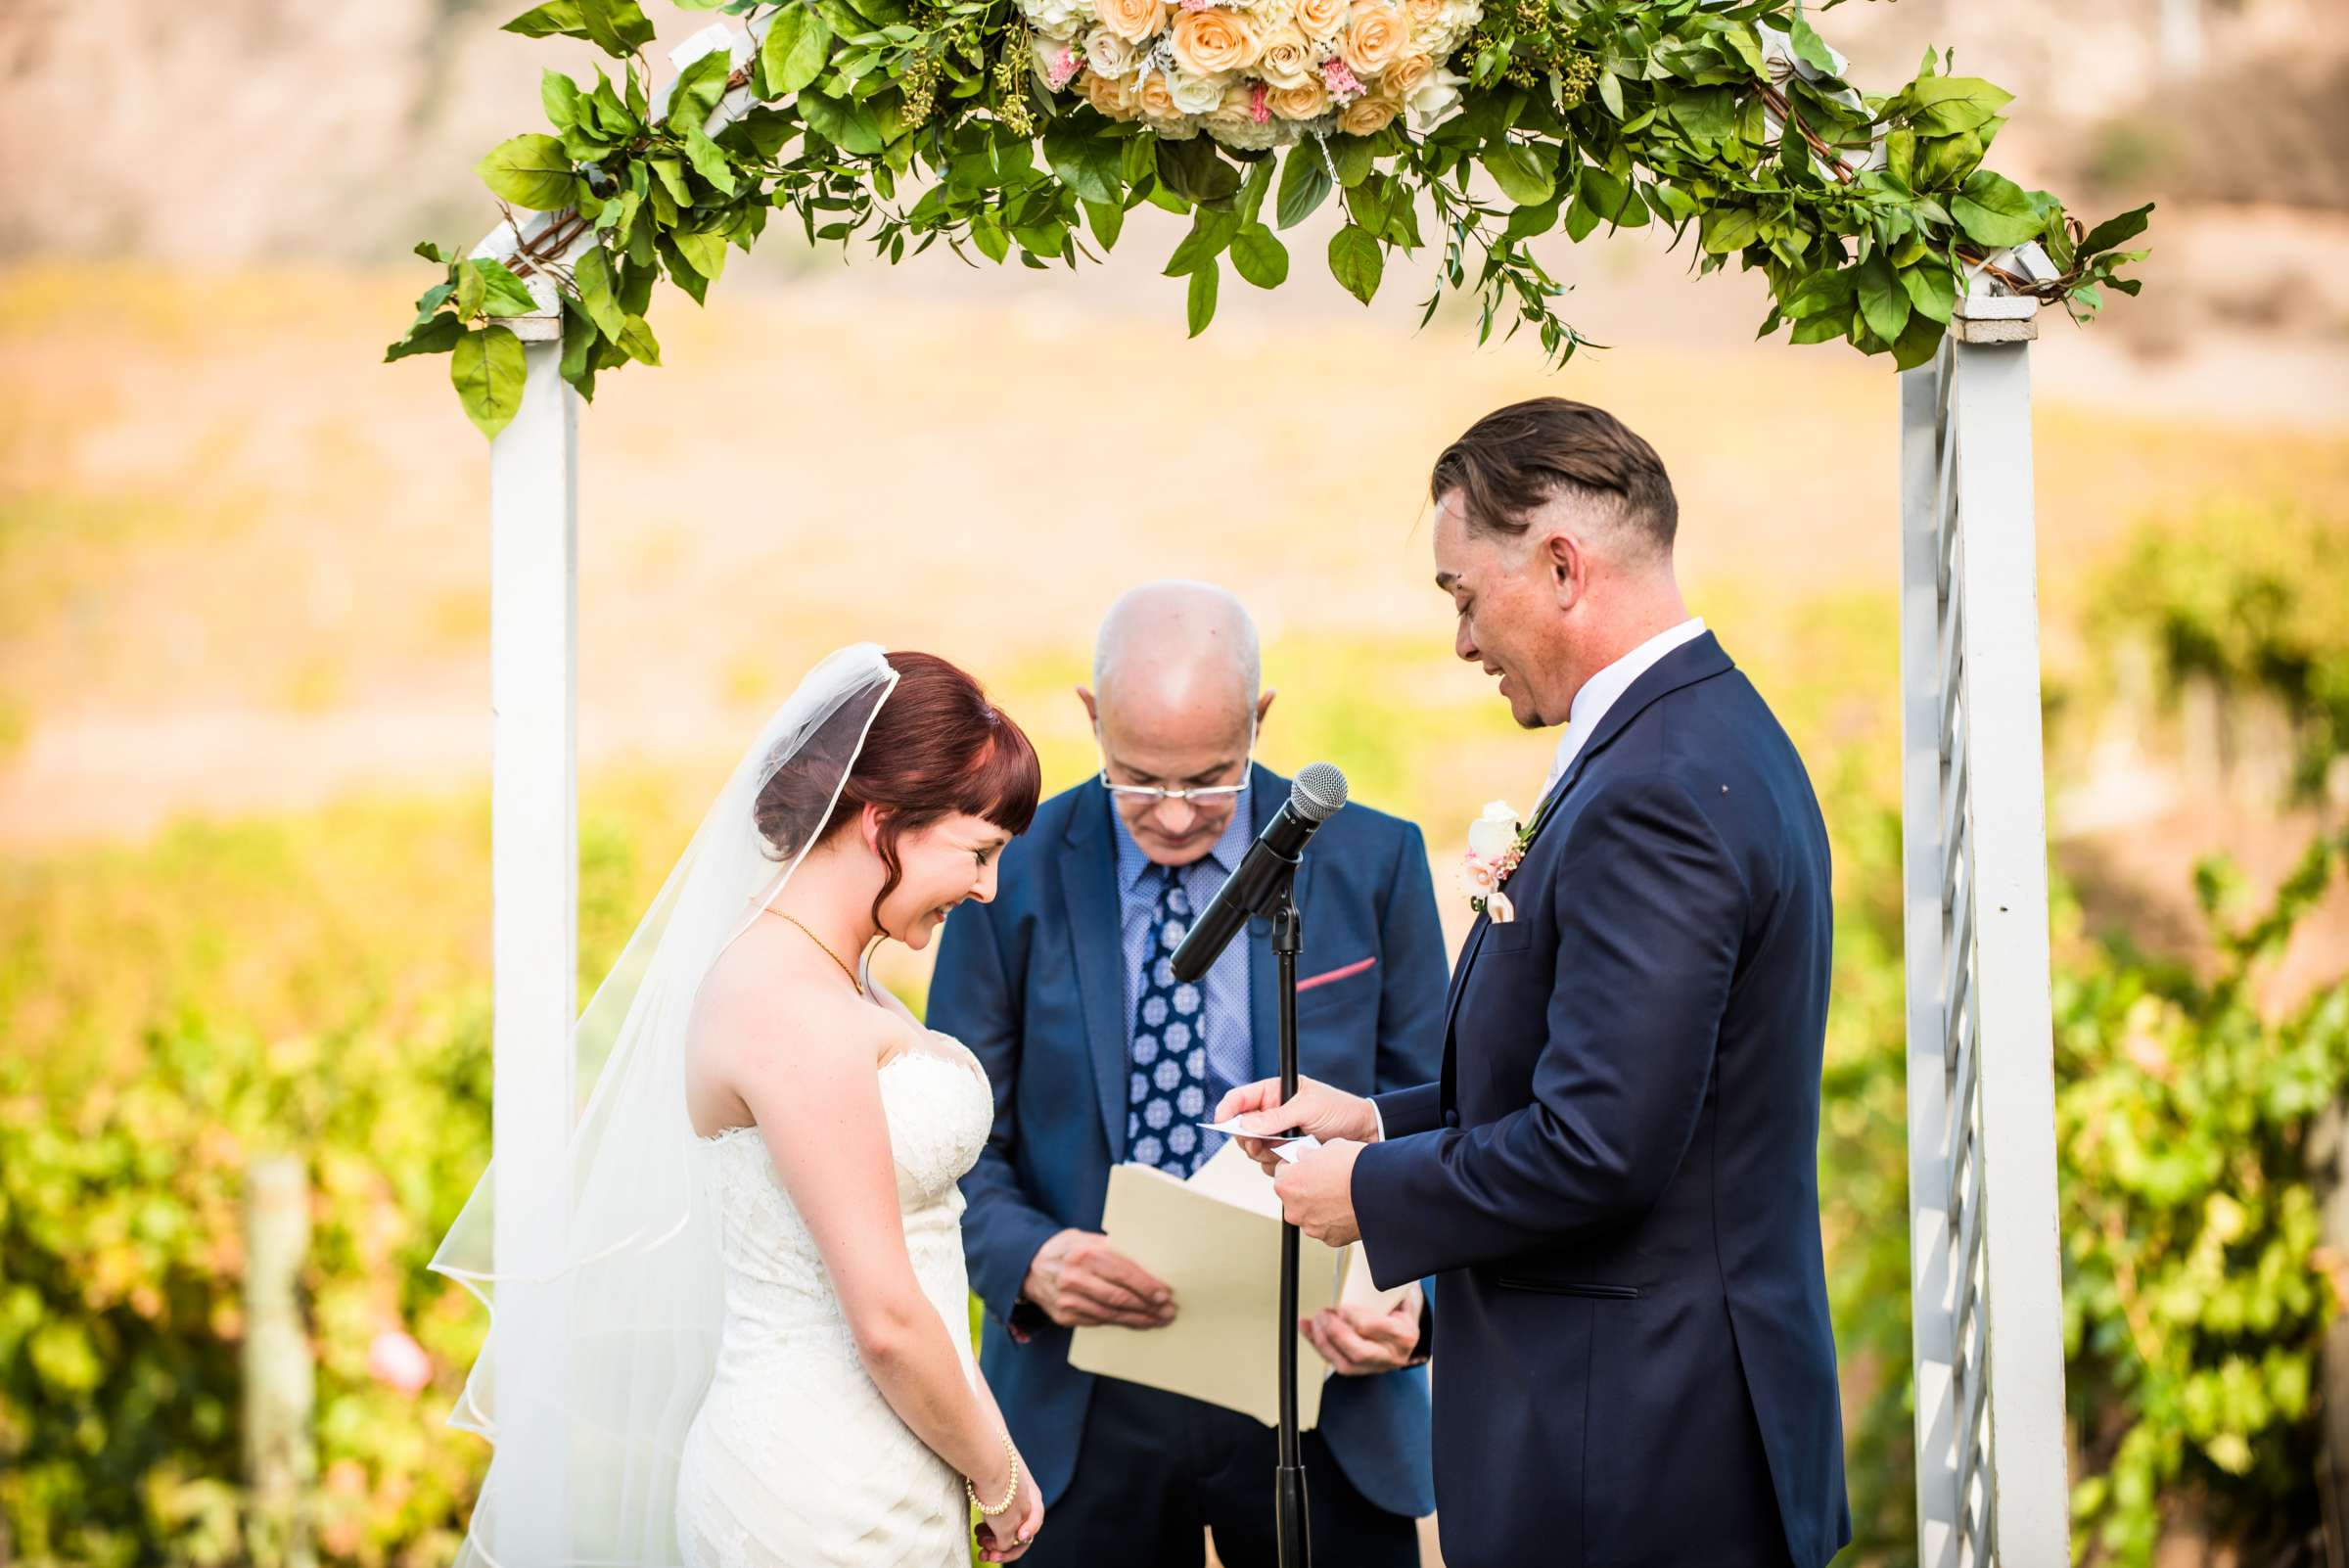 Orfila Vineyards Wedding, Tulasi and Richard Wedding Photo #28 by True Photography